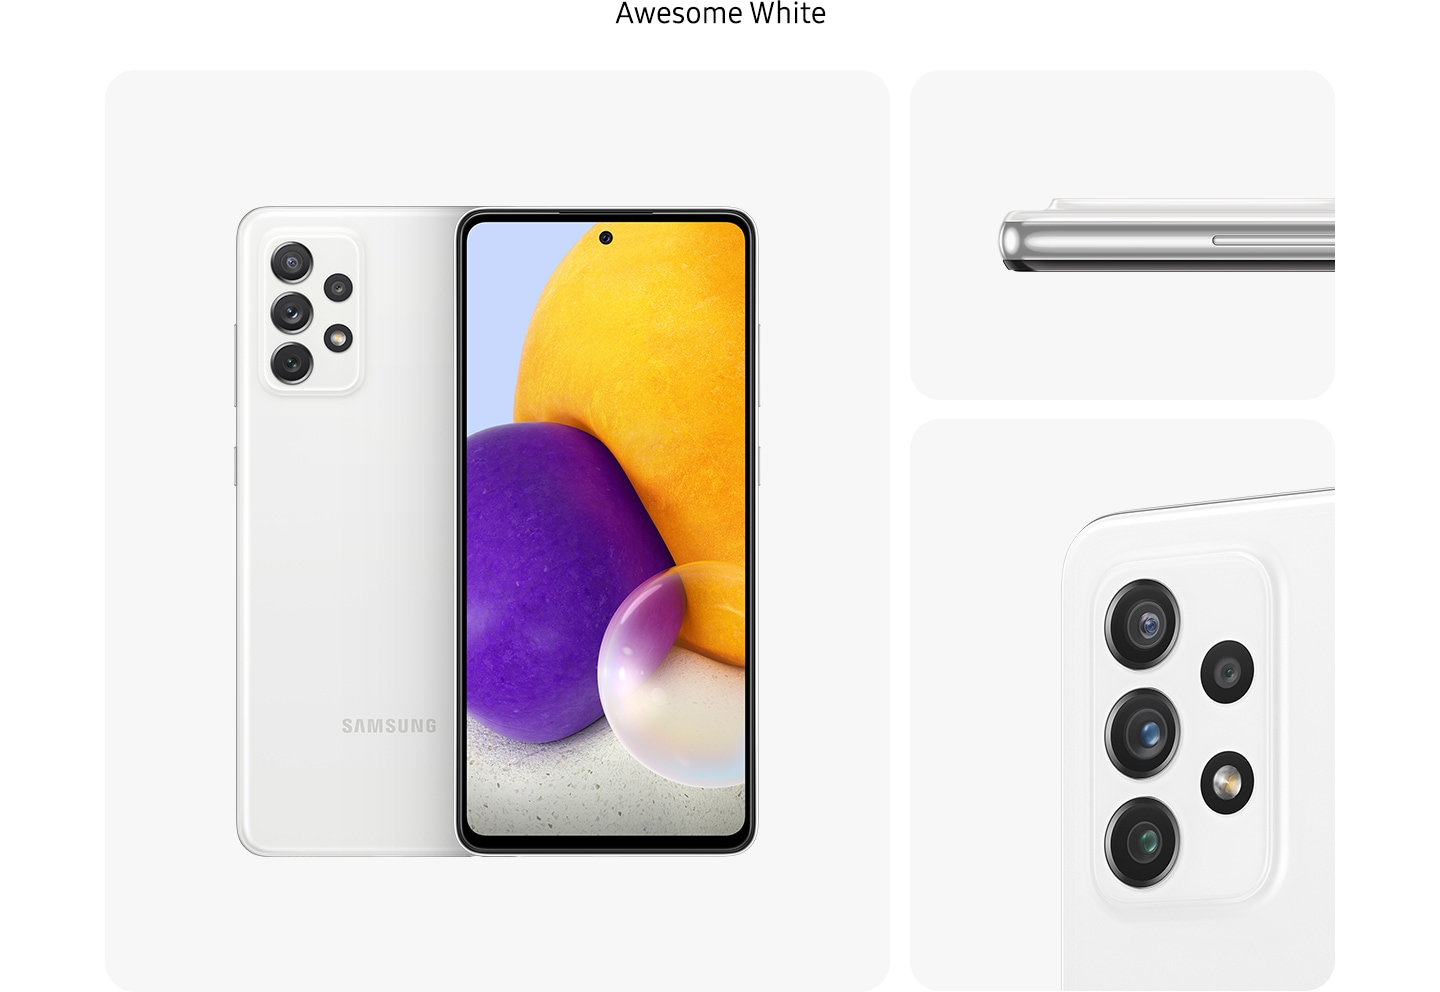 Galaxy A72 in Awesome white, seen from multiple angles to show the design: rear, front, side and close-up on the rear camera.